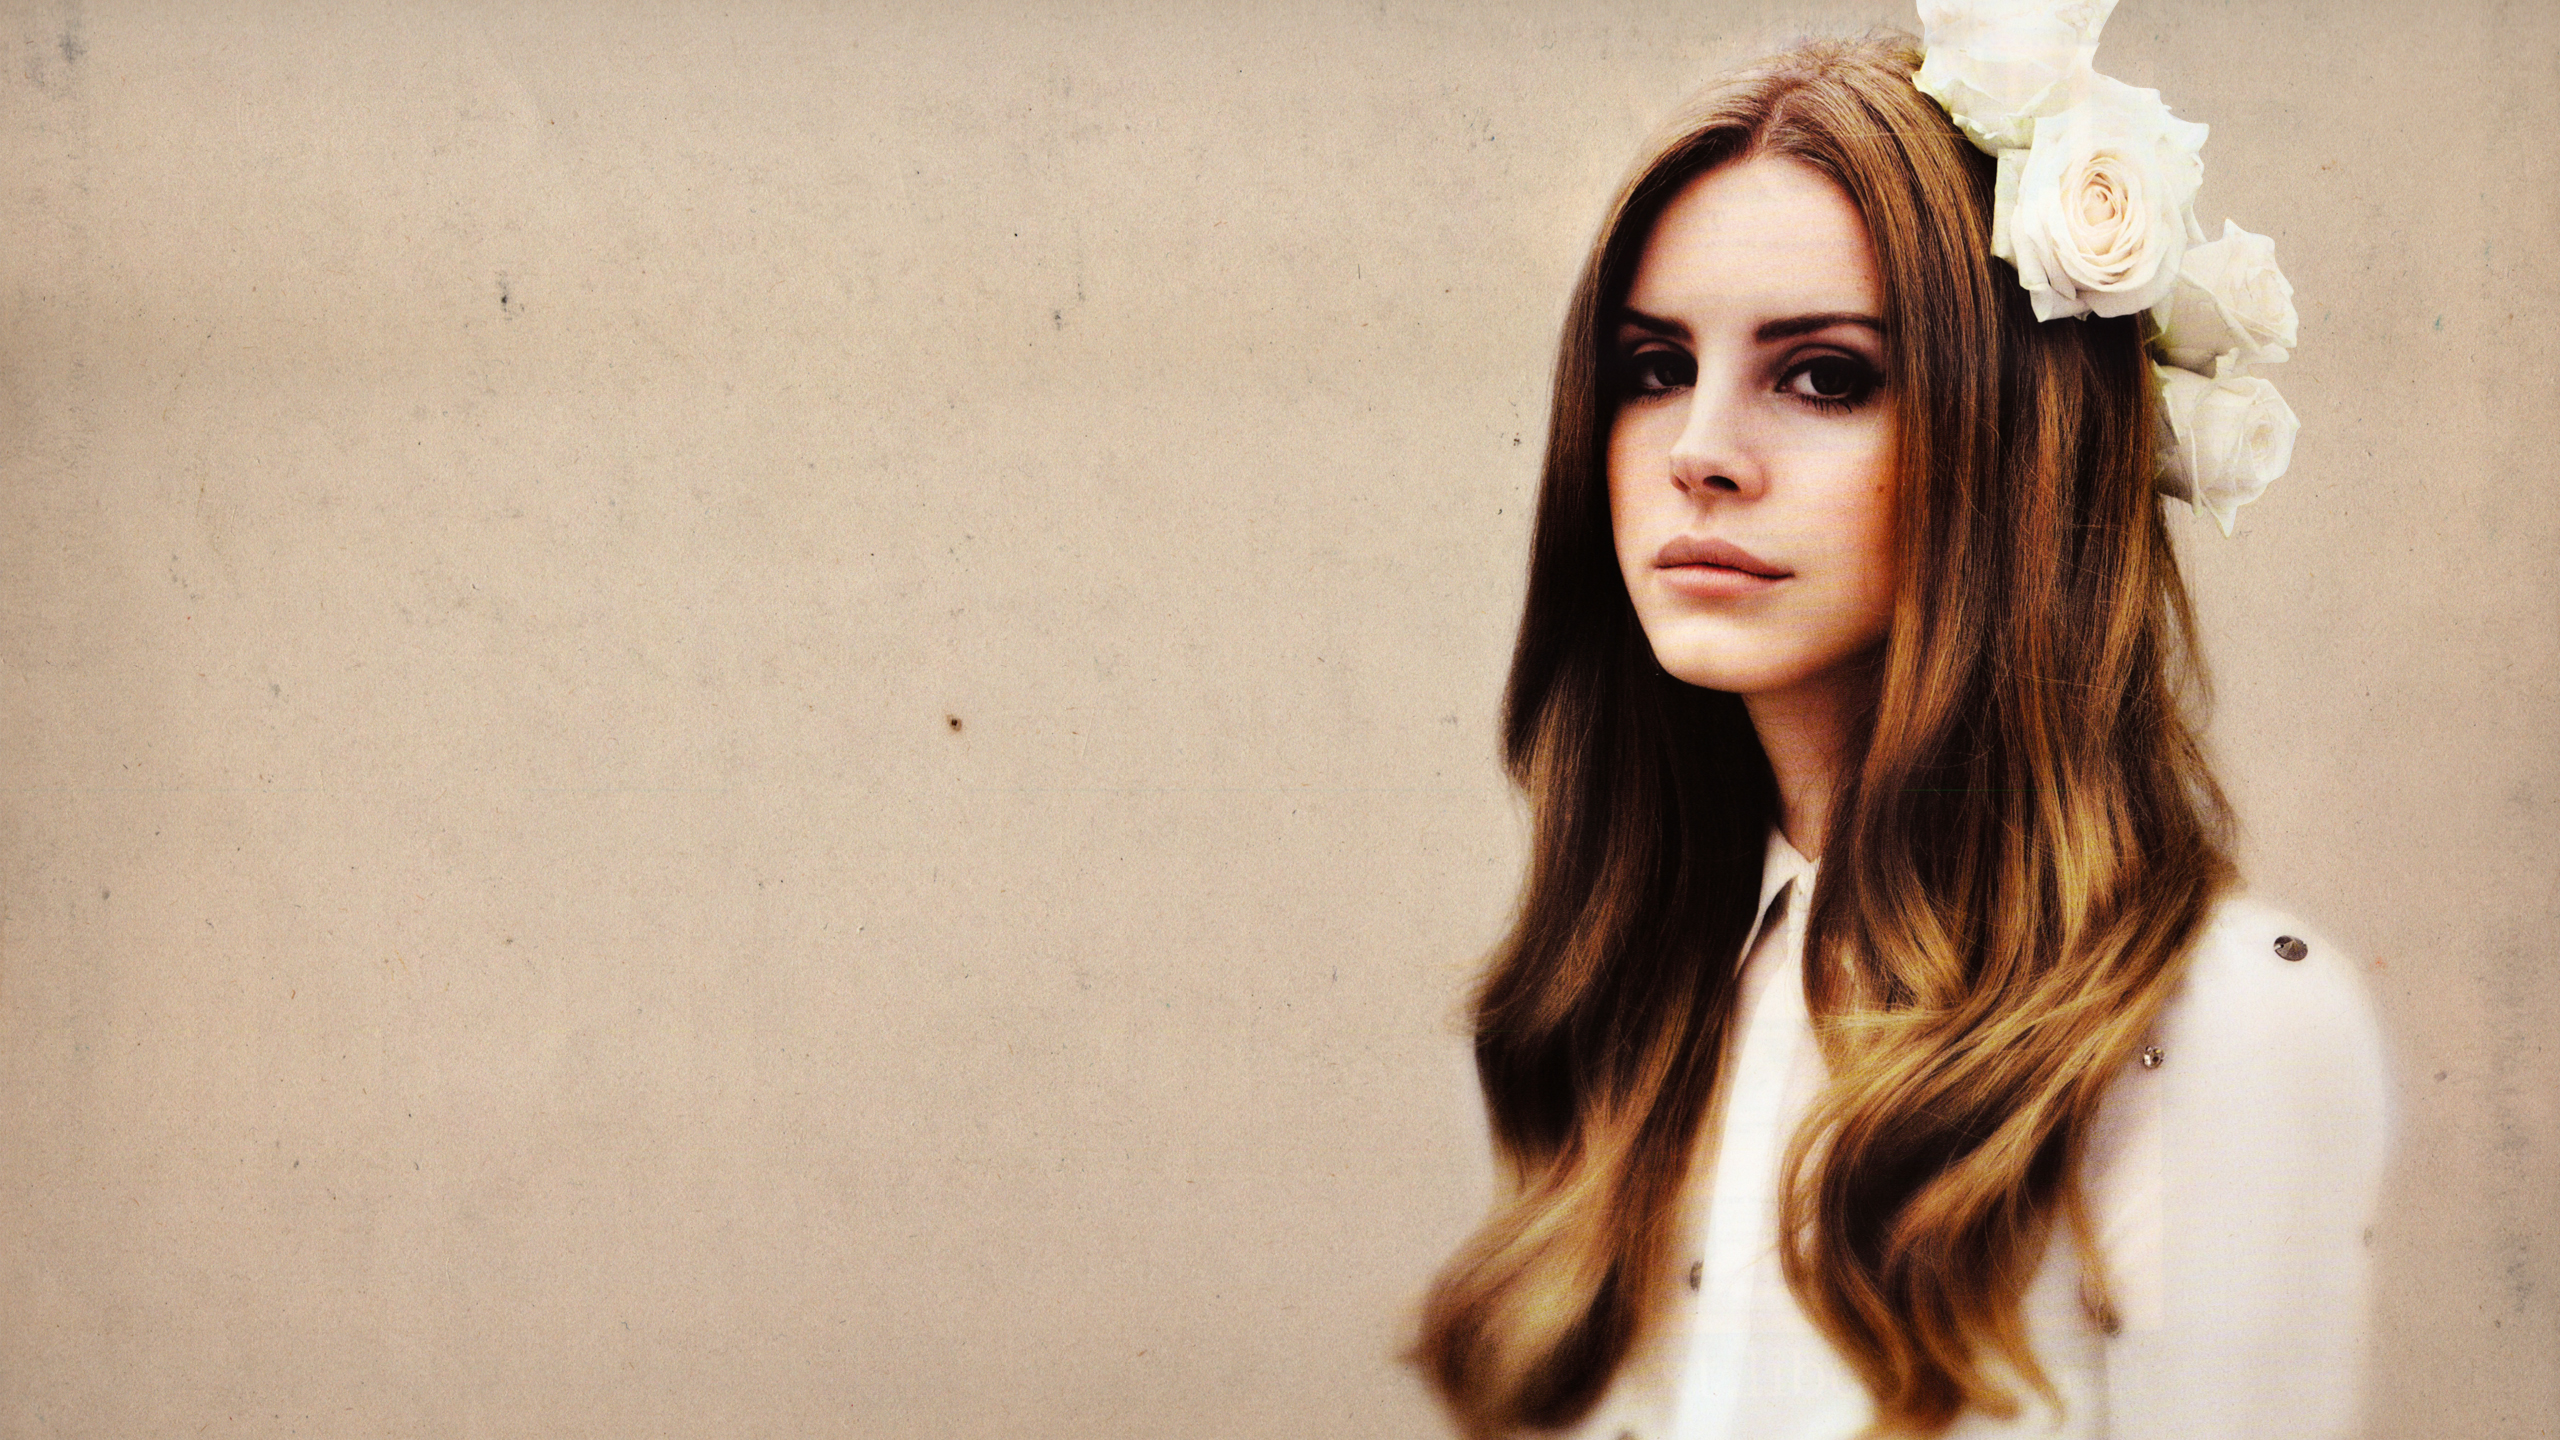 11 music artists lana del rey